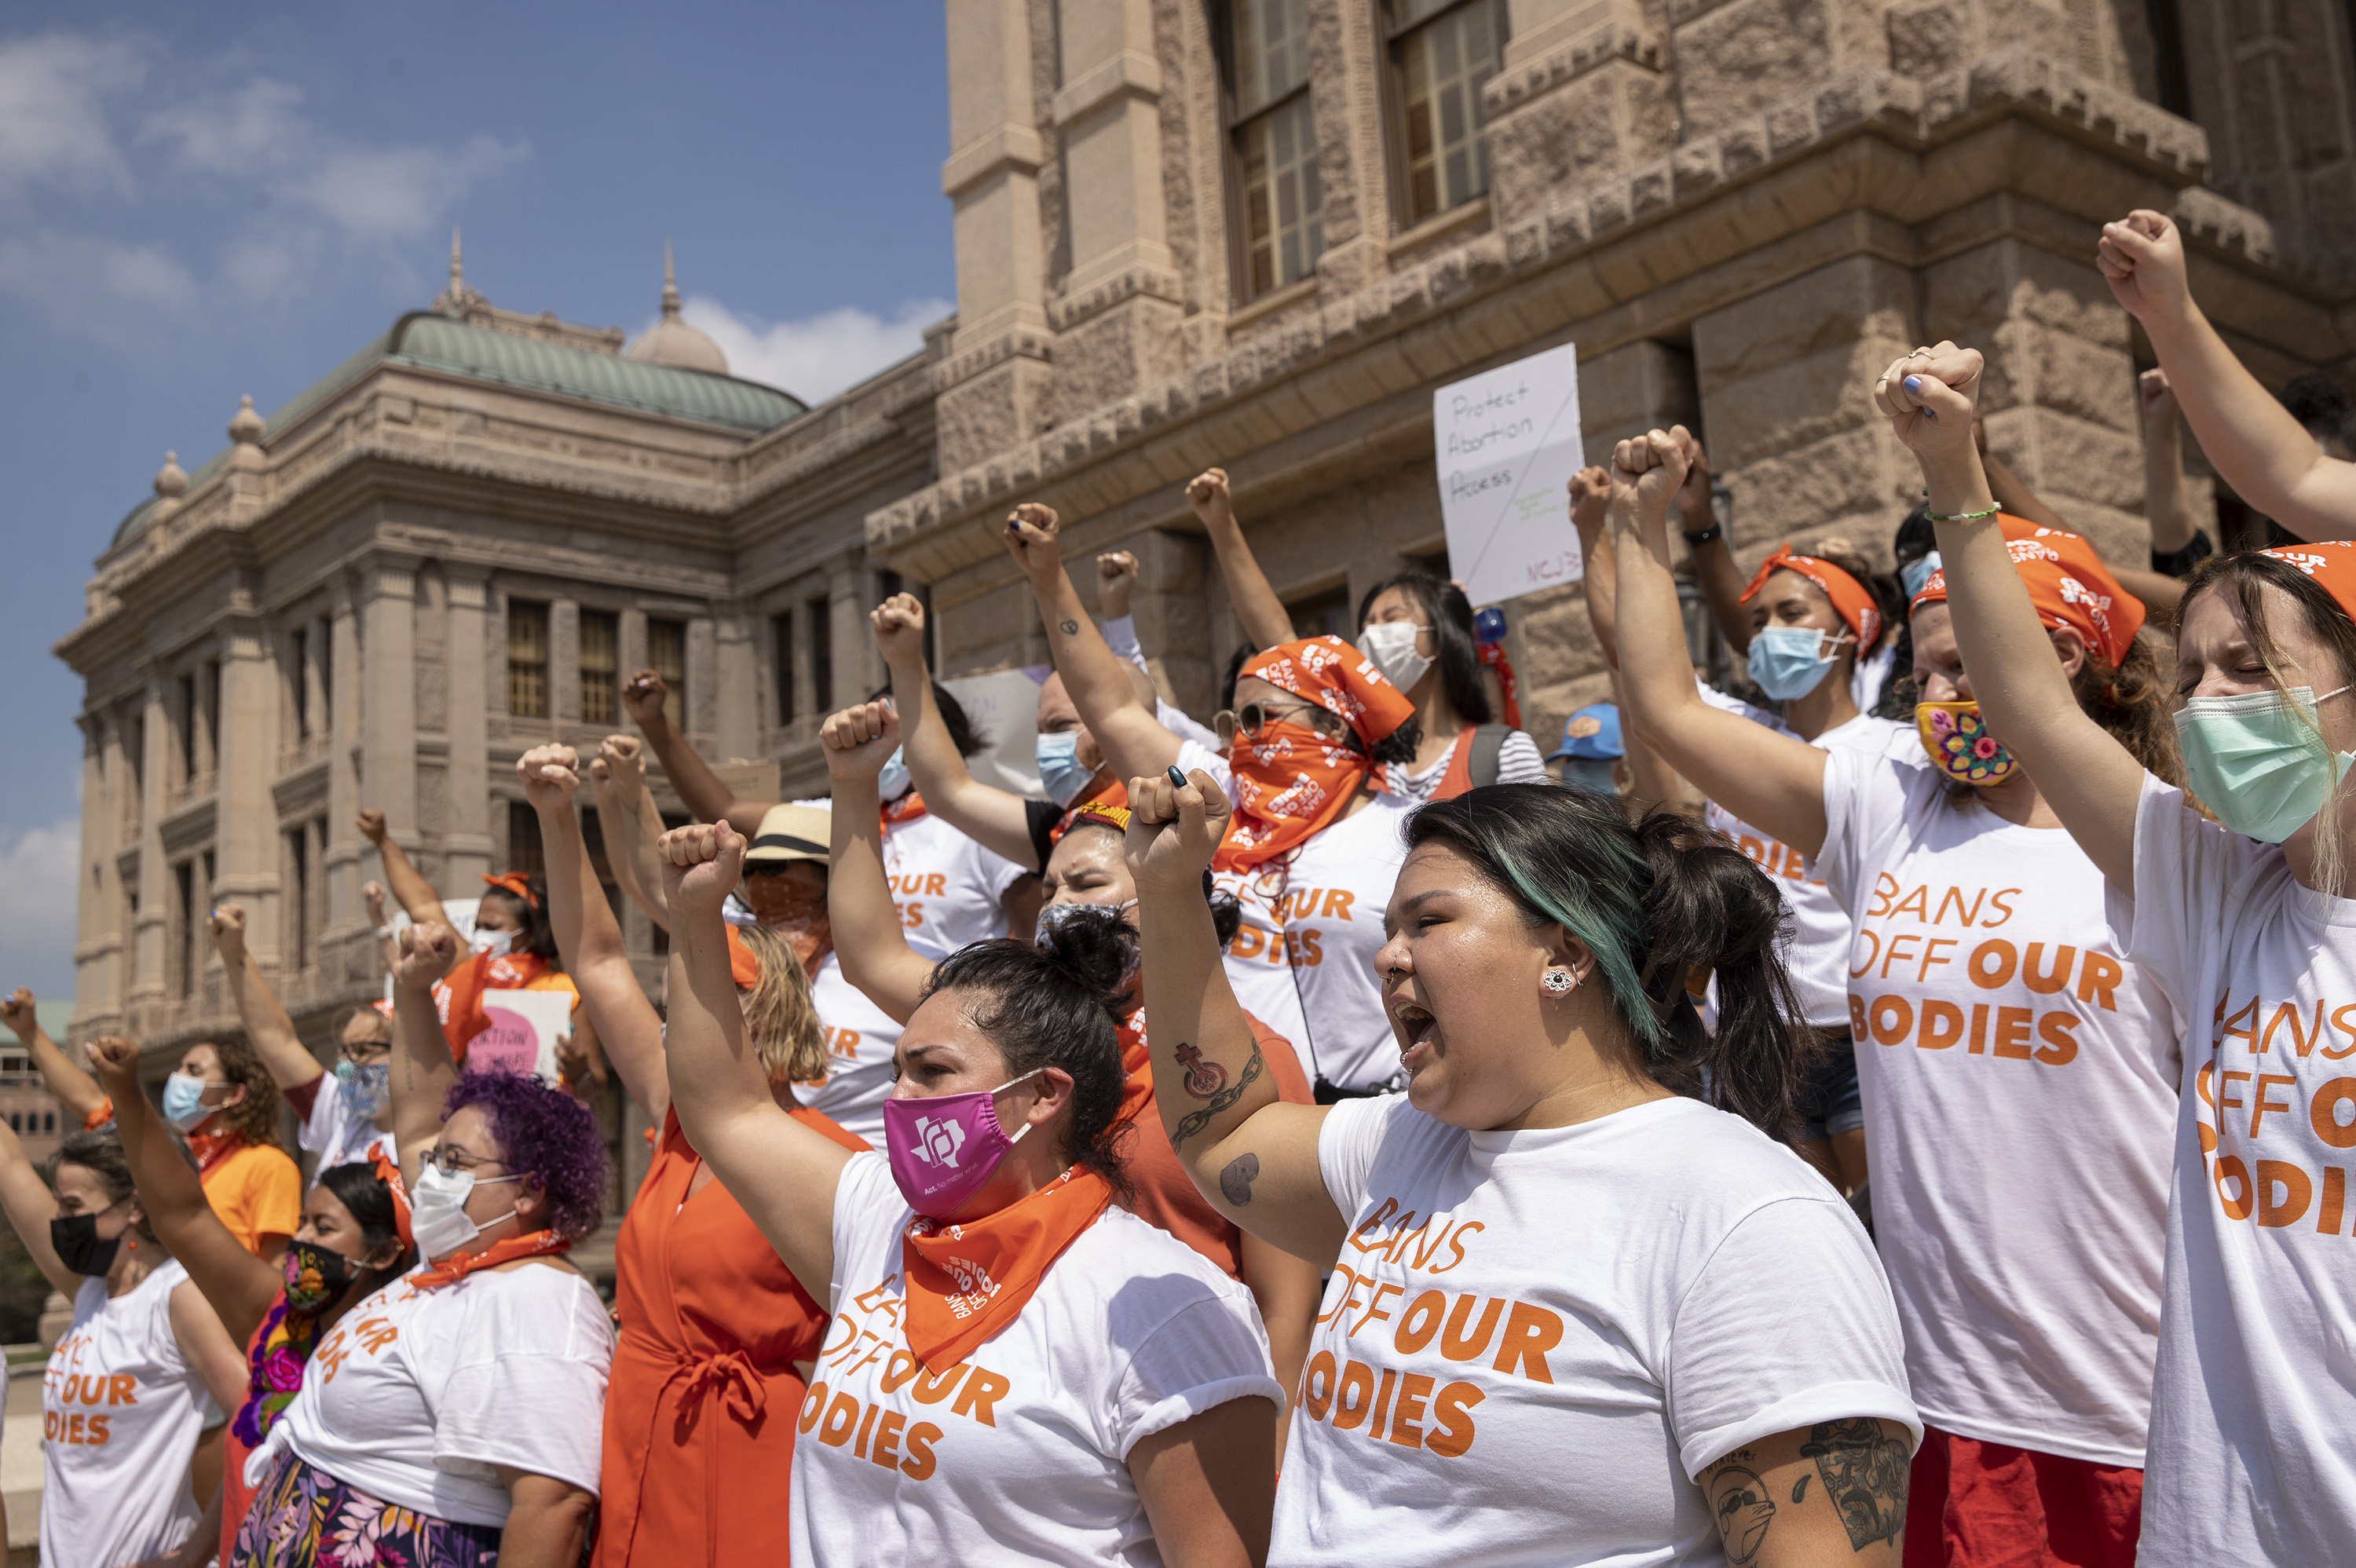 Women protest against the six-week abortion ban at the Capitol in Austin, Texas, on Wednesday, Sept. 1, 2021.